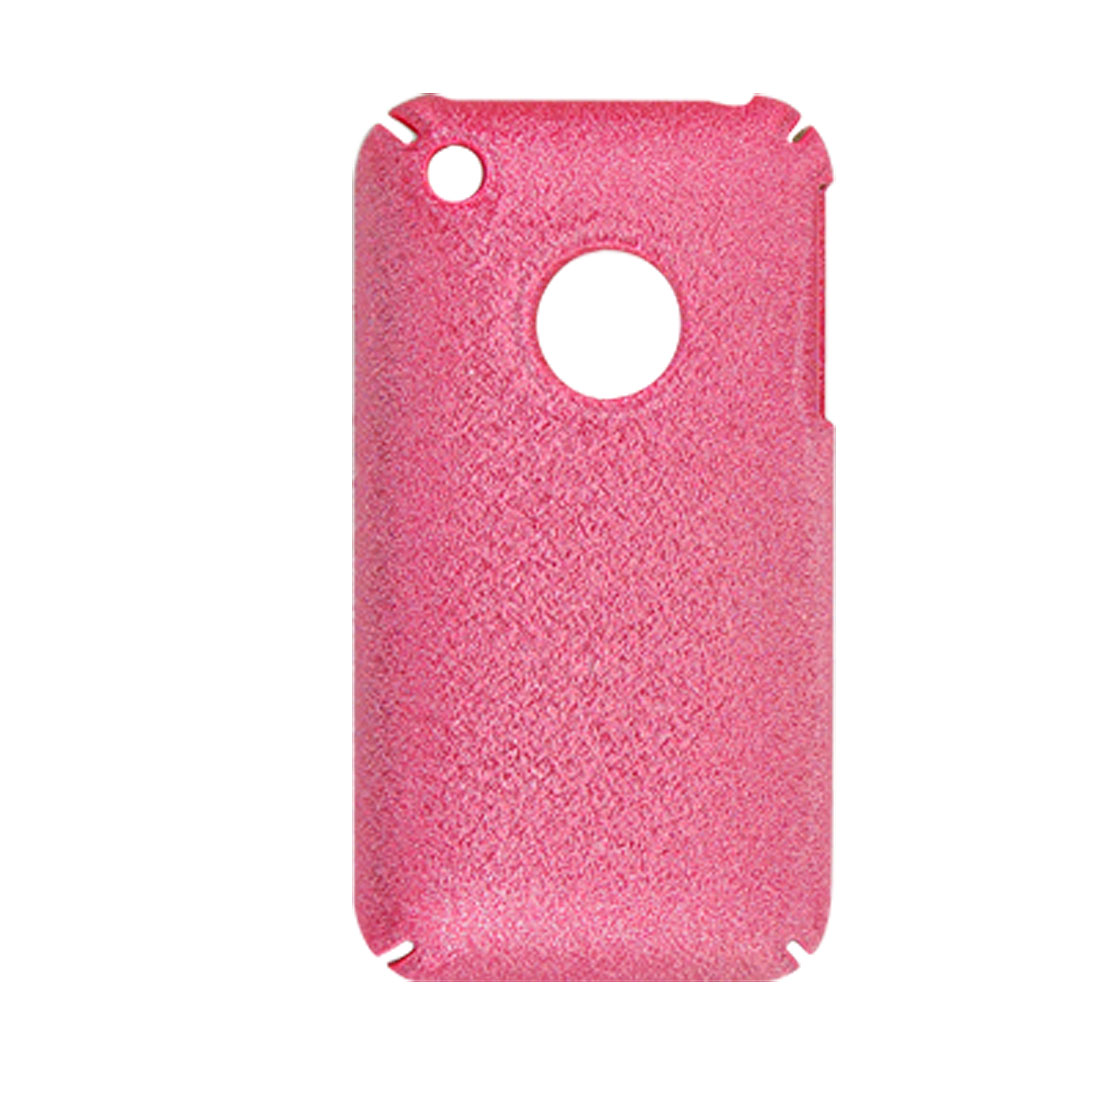 Fit iPhone 3GS Glittery Hard Plastic Back Case Sheild